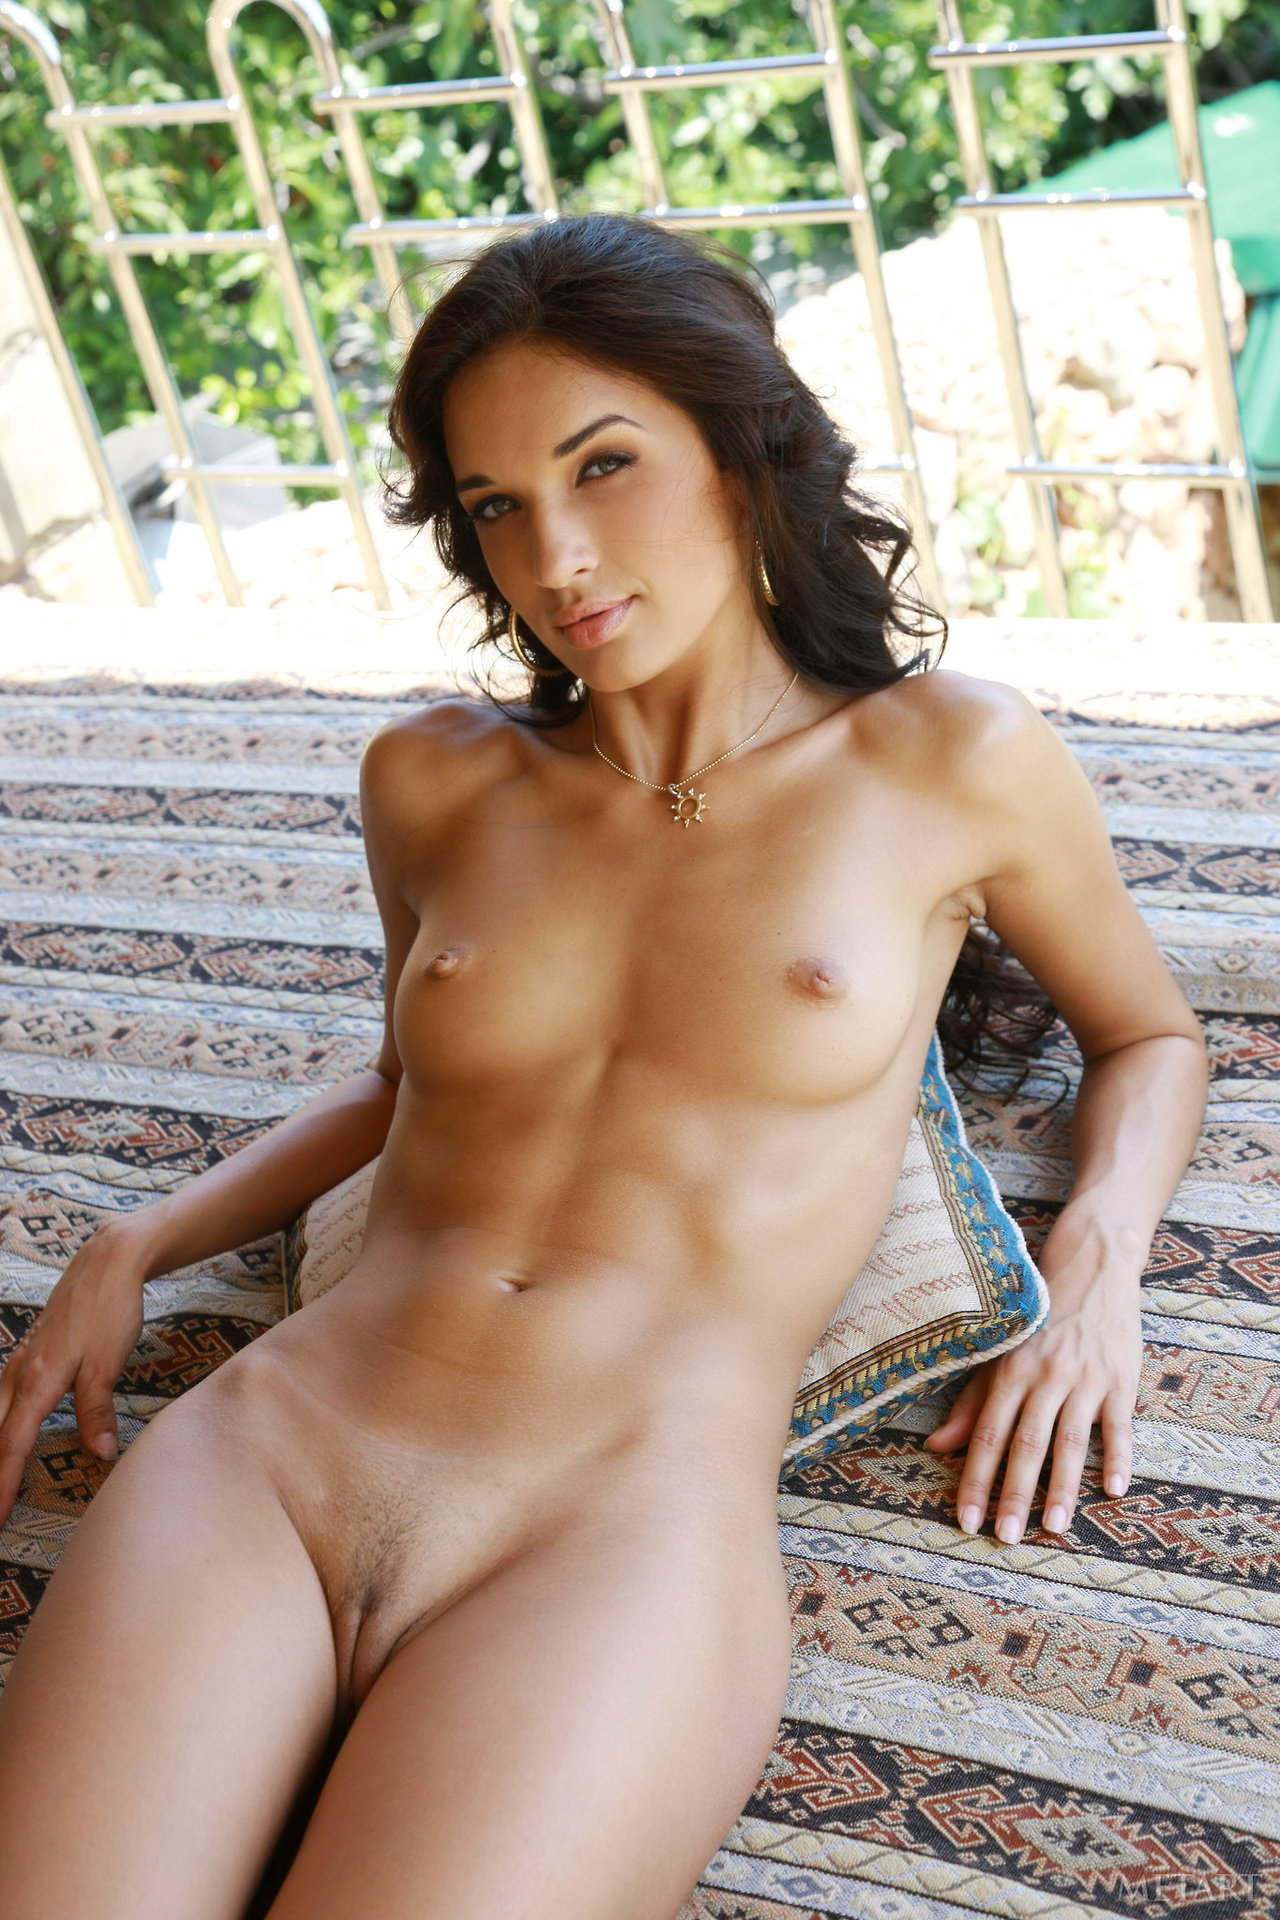 Nude latina with abs